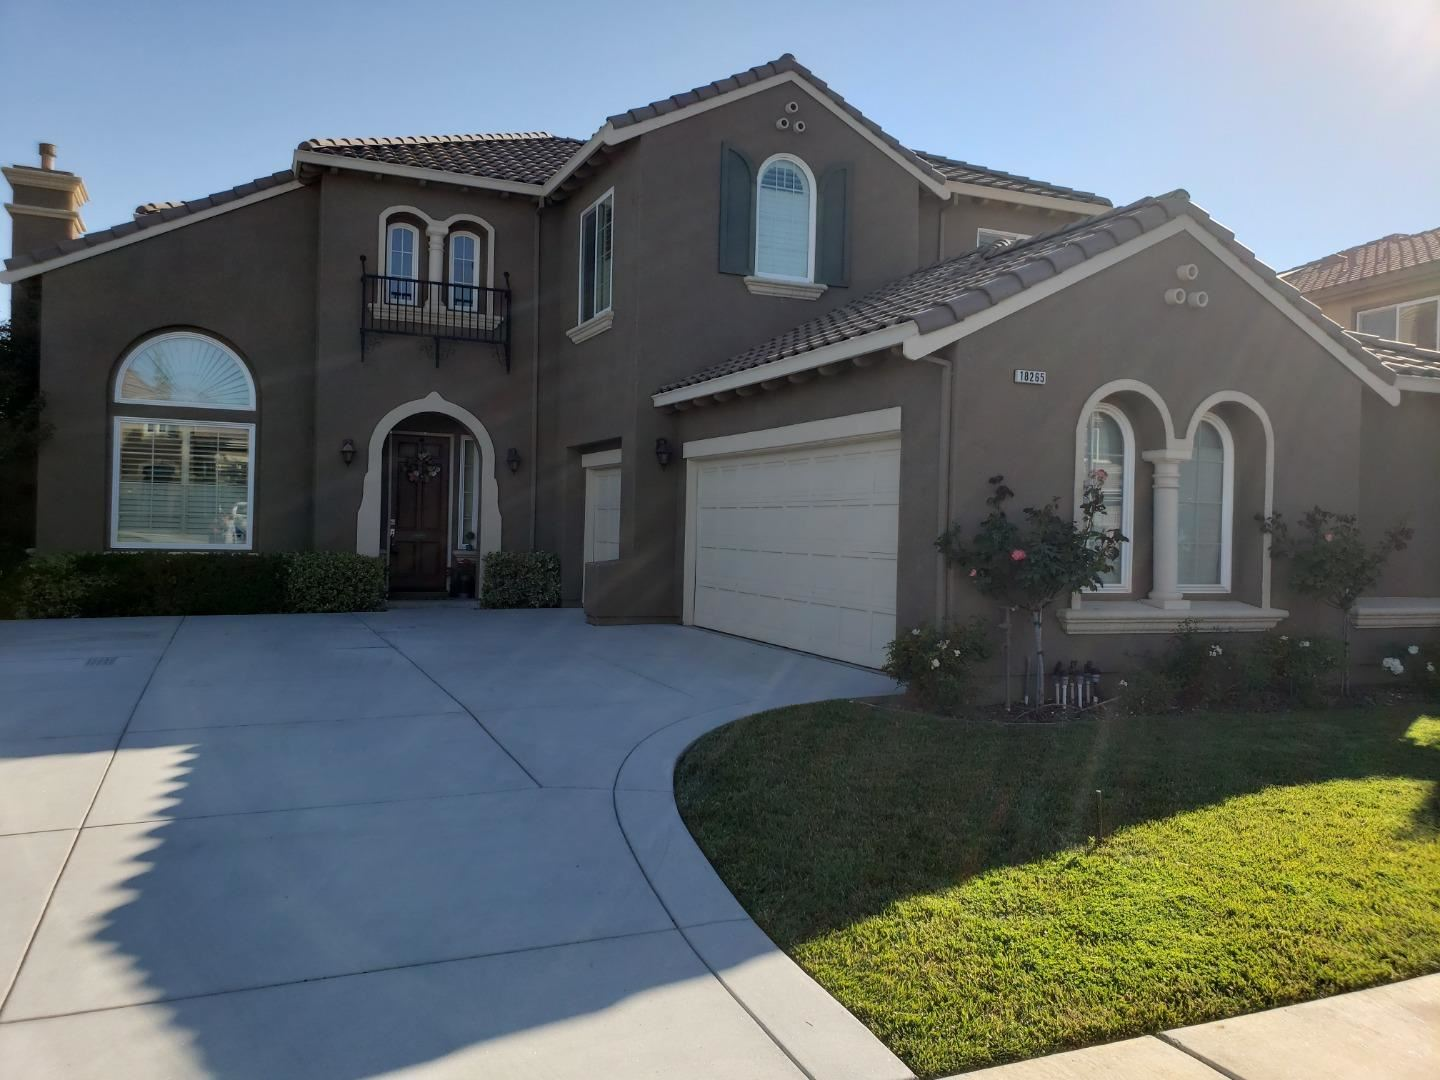 Photo for 18265 Los Padres Place, MORGAN HILL, CA 95037 (MLS # ML81846528)